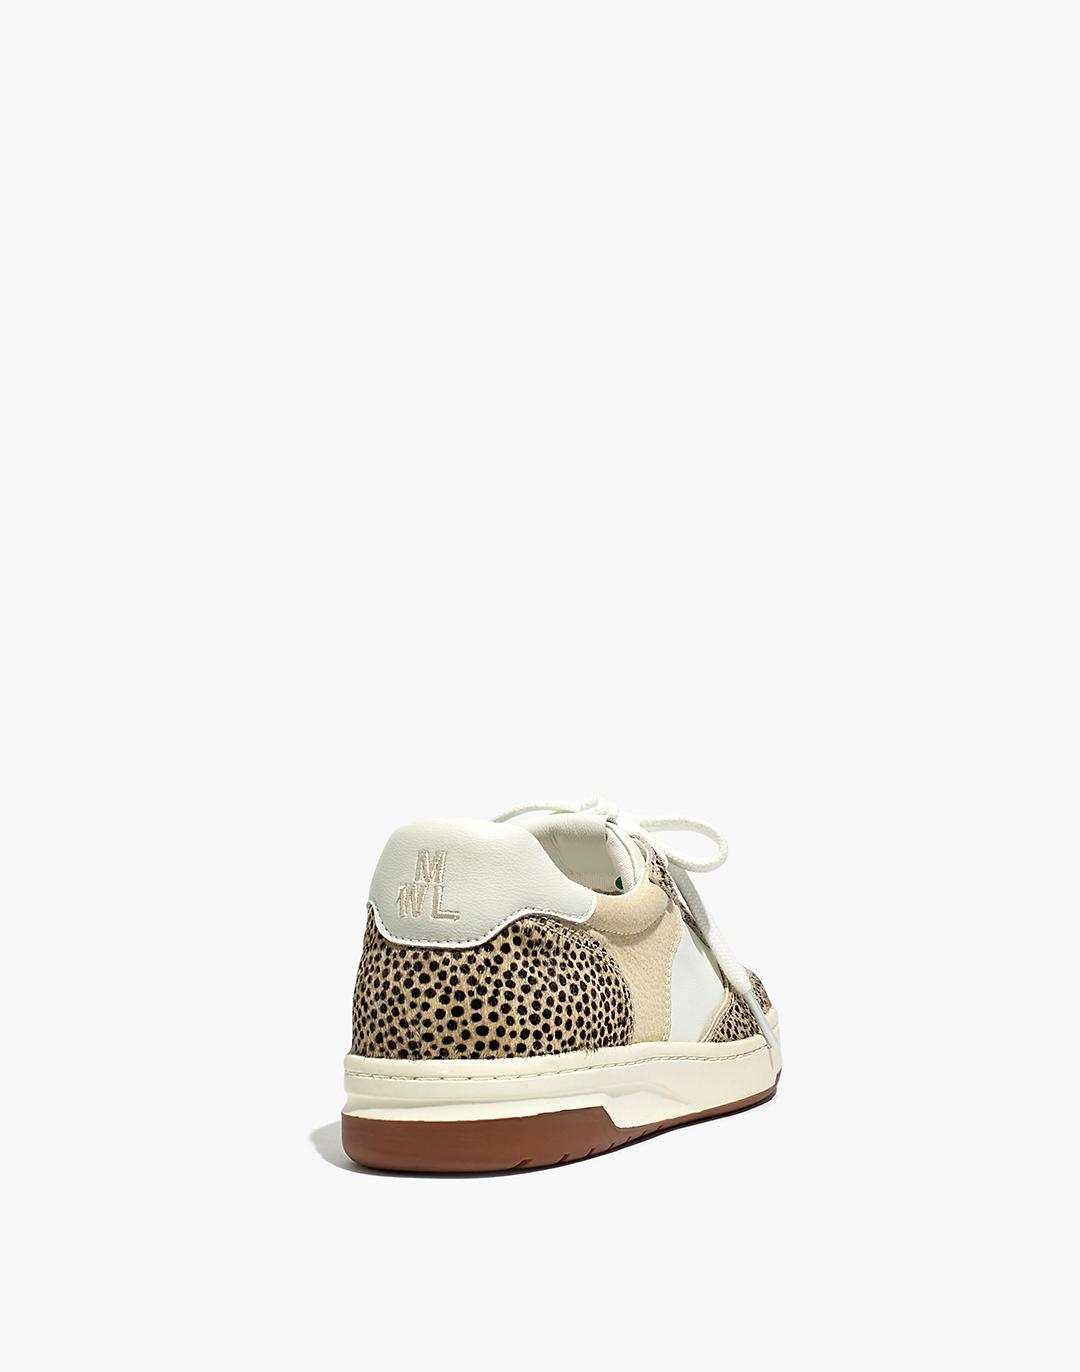 Court Sneakers in Spotted Calf Hair 1